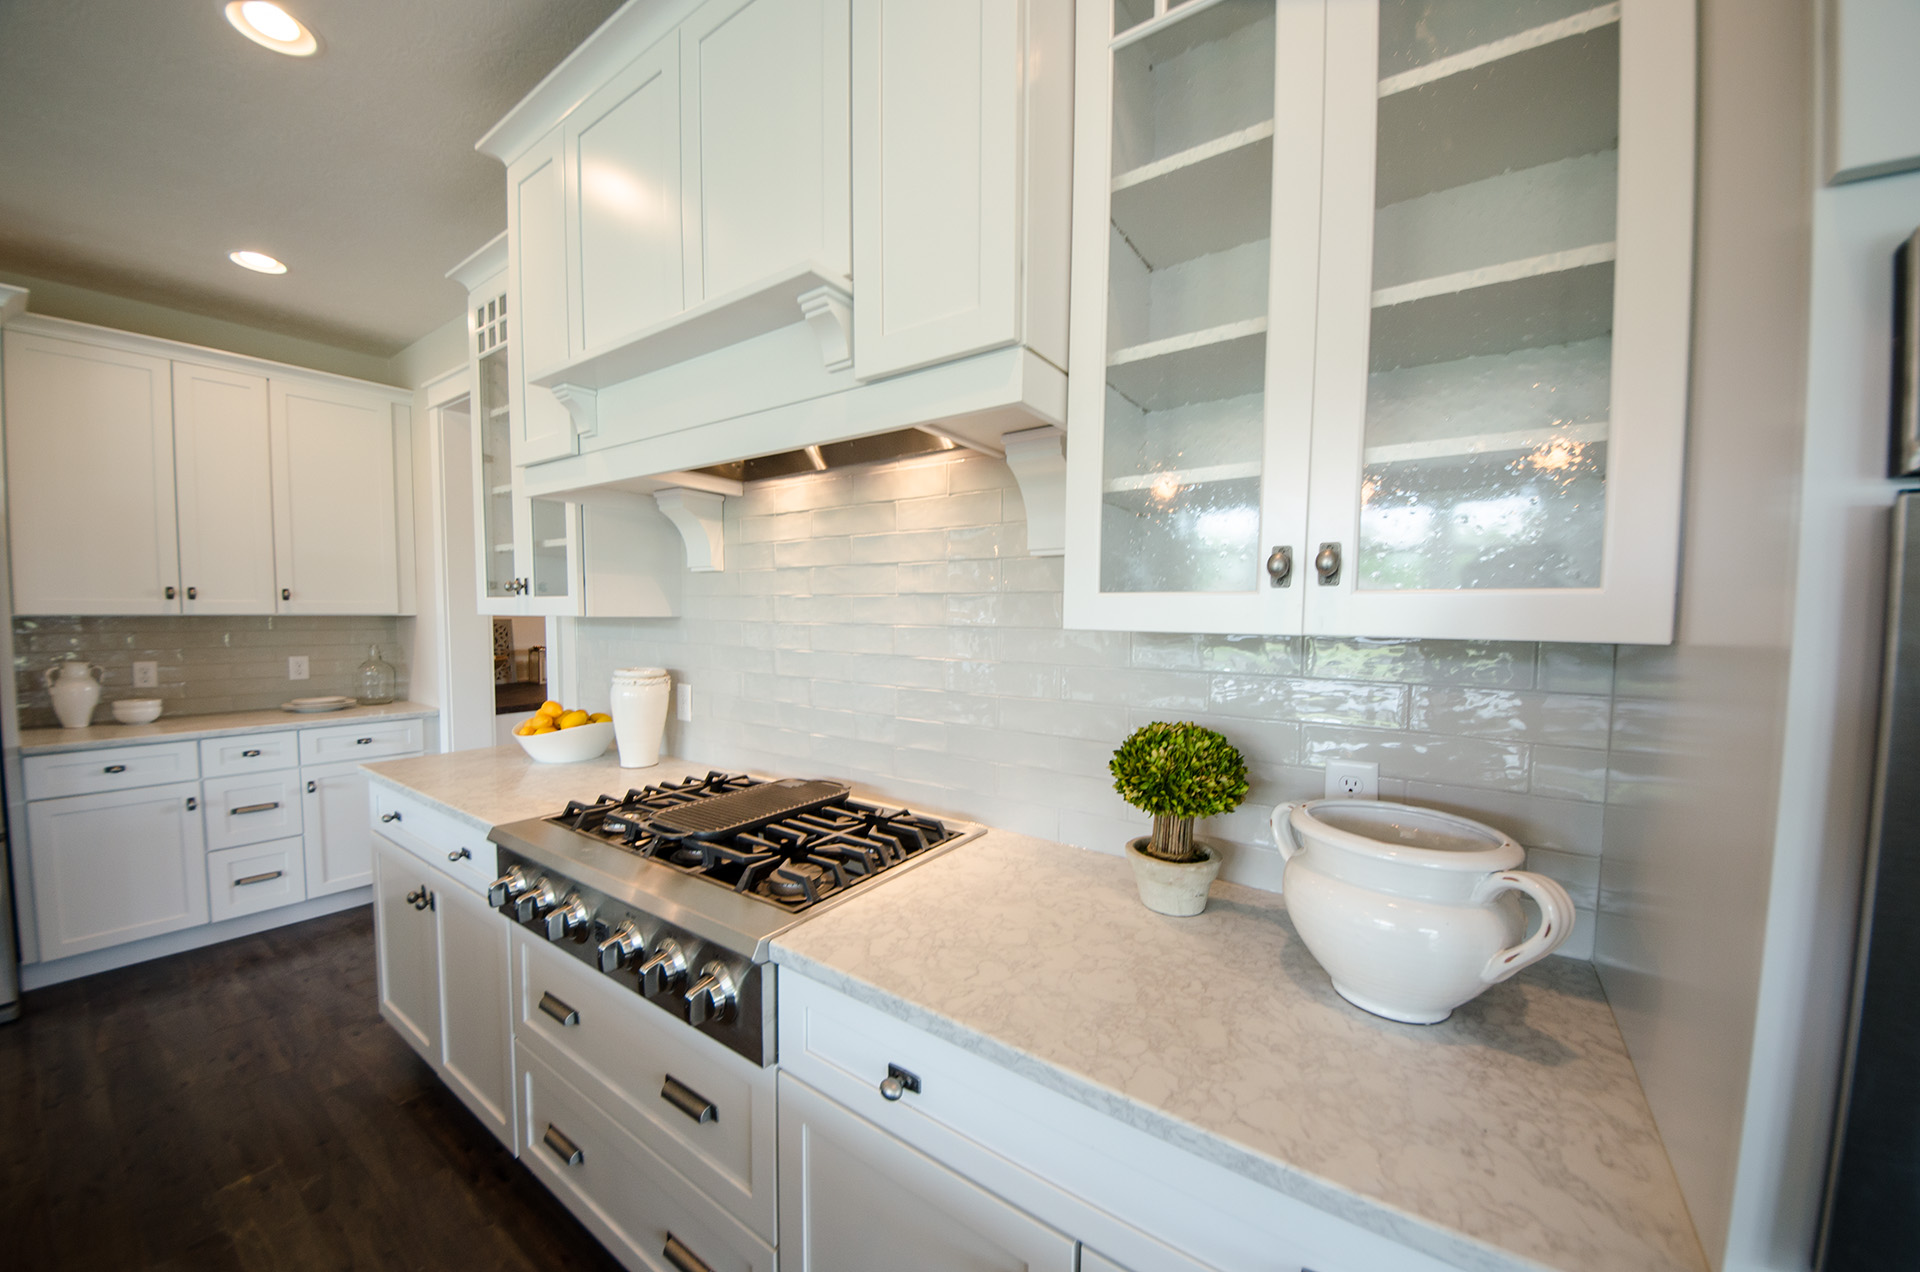 Trails of Saddle Creek | The Arianna | Lot 127 - Design Homes